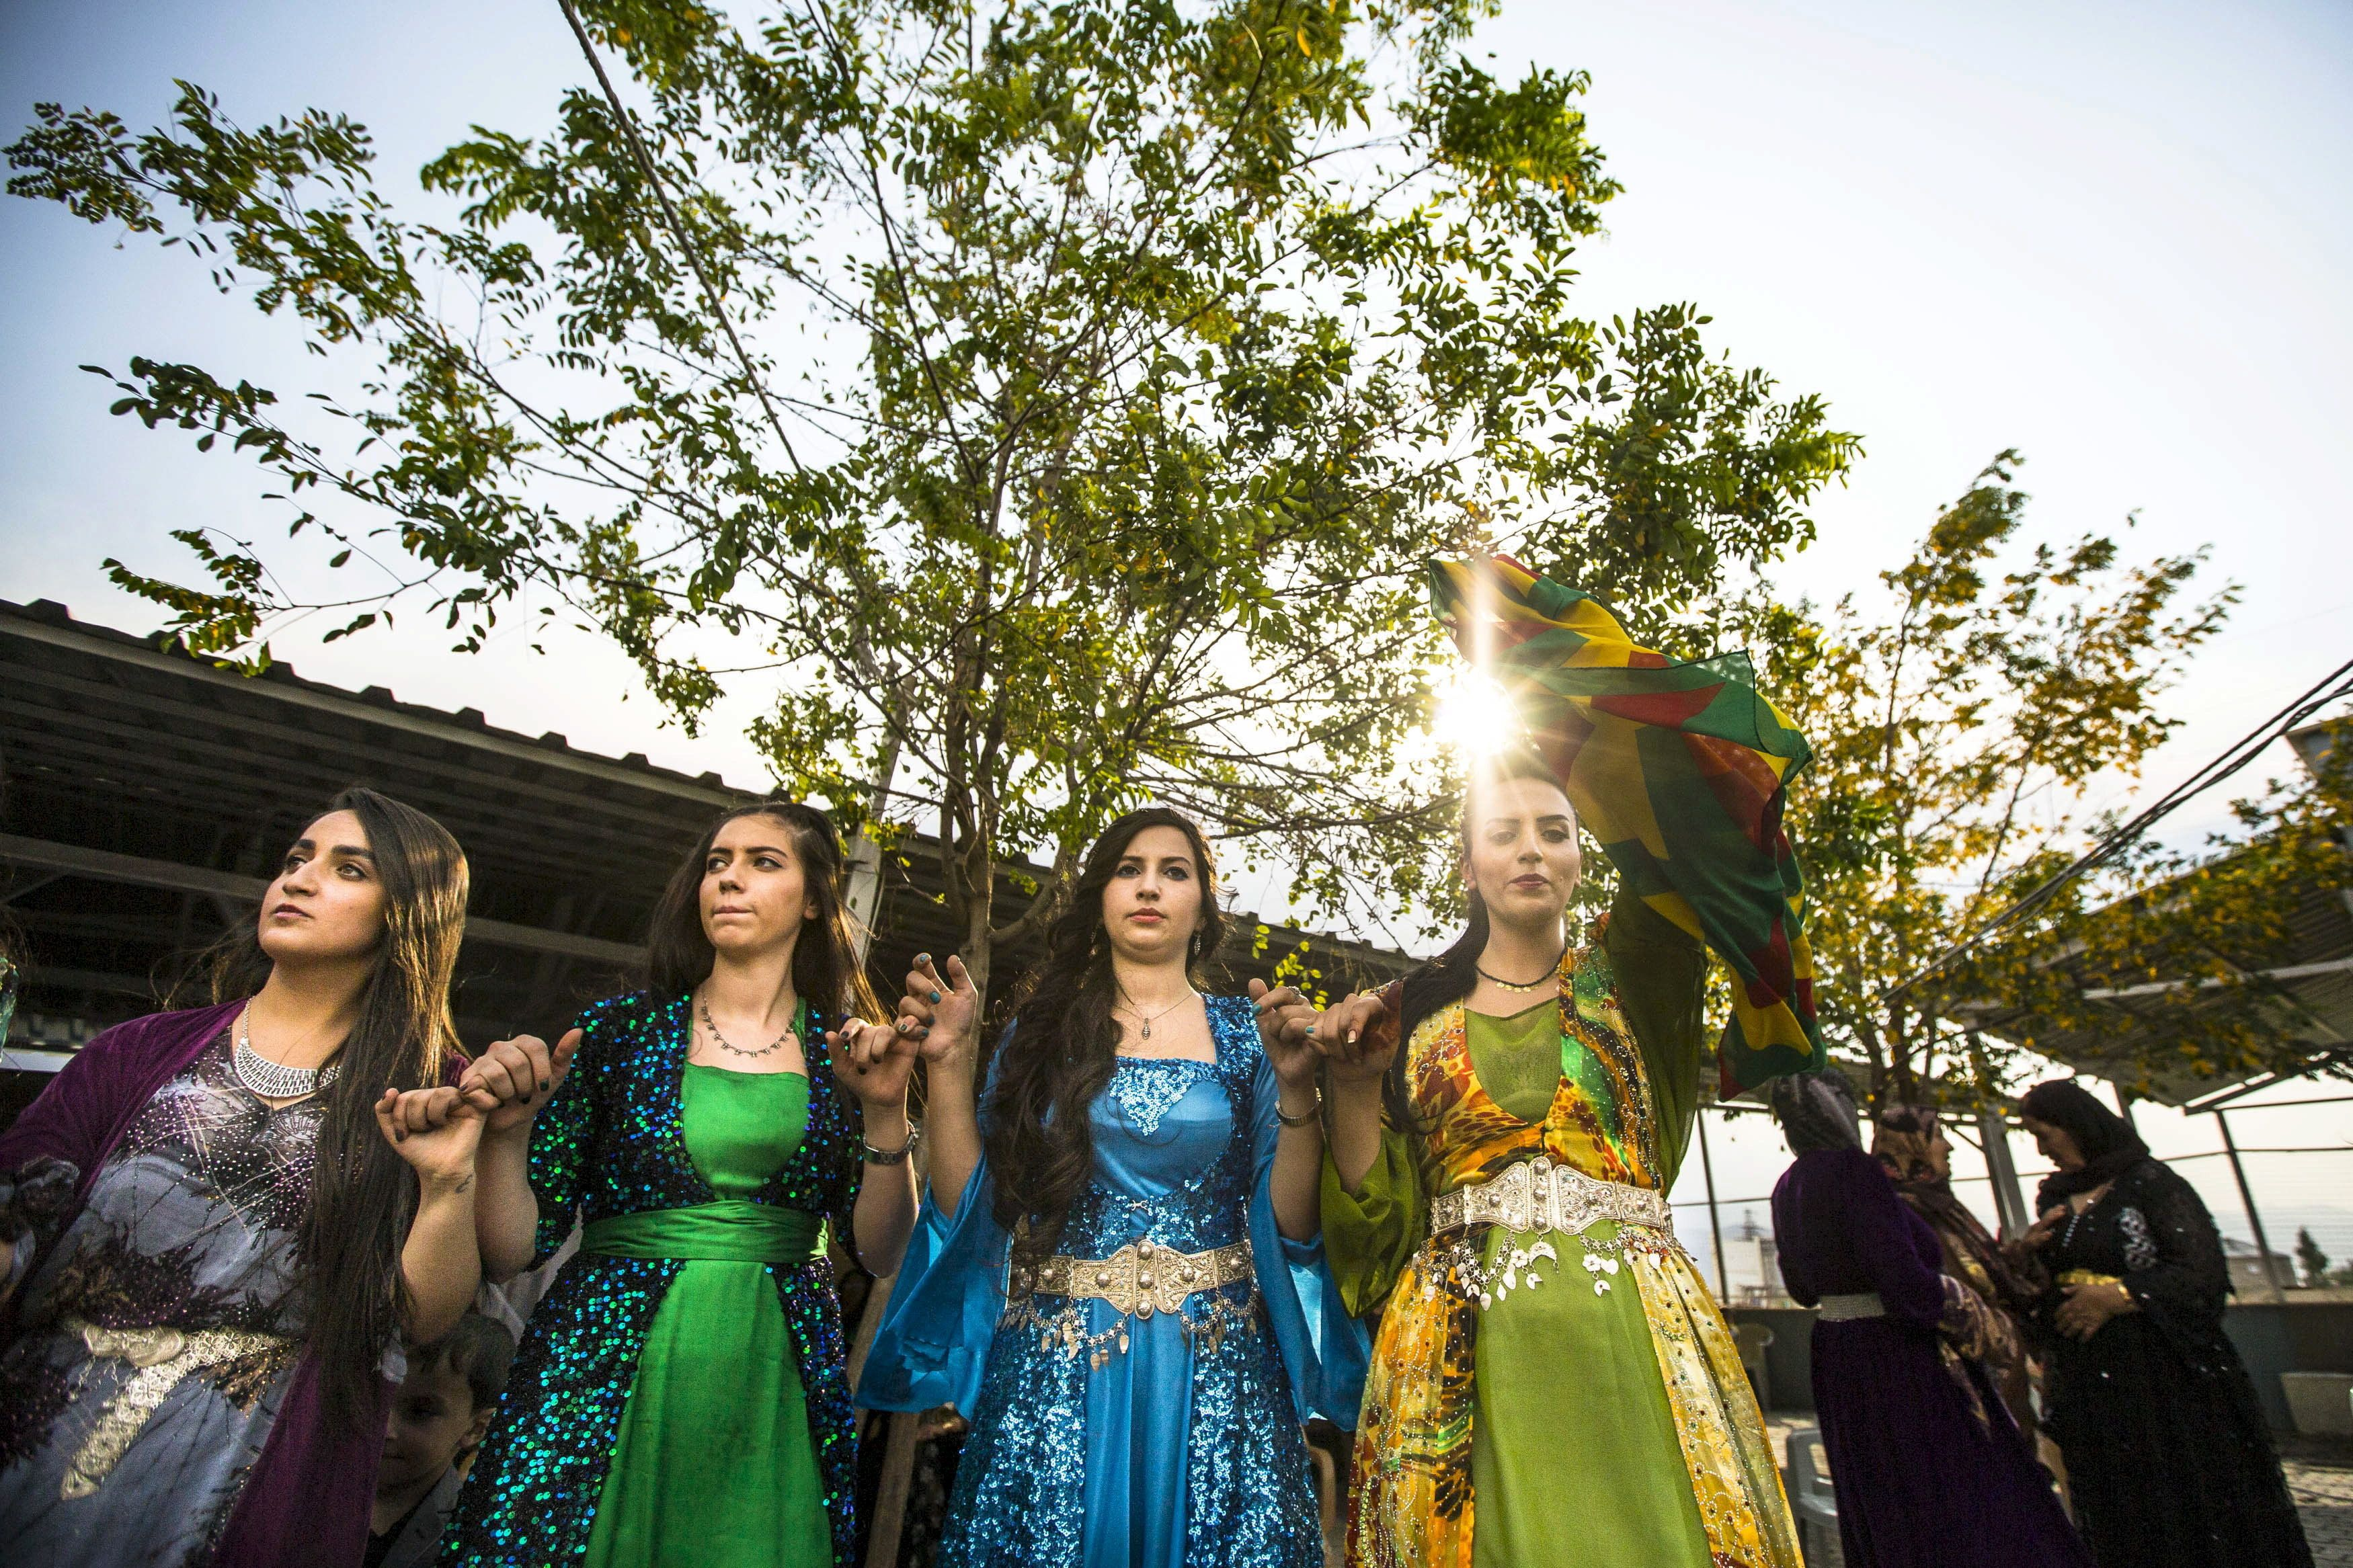 Turkish Kurdish women in traditional dresses dance during a wedding ceremony for newly married couple Sefket and Dilges Baskin, in Yuksekova in the Kurdish-dominated southeastern Hakkari province of Turkey, September 6, 2015. Militants of the outlawed Kurdistan Workers' Party (PKK) have been clashing almost daily with security forces in southeast Turkey since July, when a two-year ceasefire between the PKK and the government collapsed, with both sides blaming each other. Officials say that more than 70 members of the security forces and hundreds of Kurdish militants have been killed. REUTERS/Huseyin Aldemir